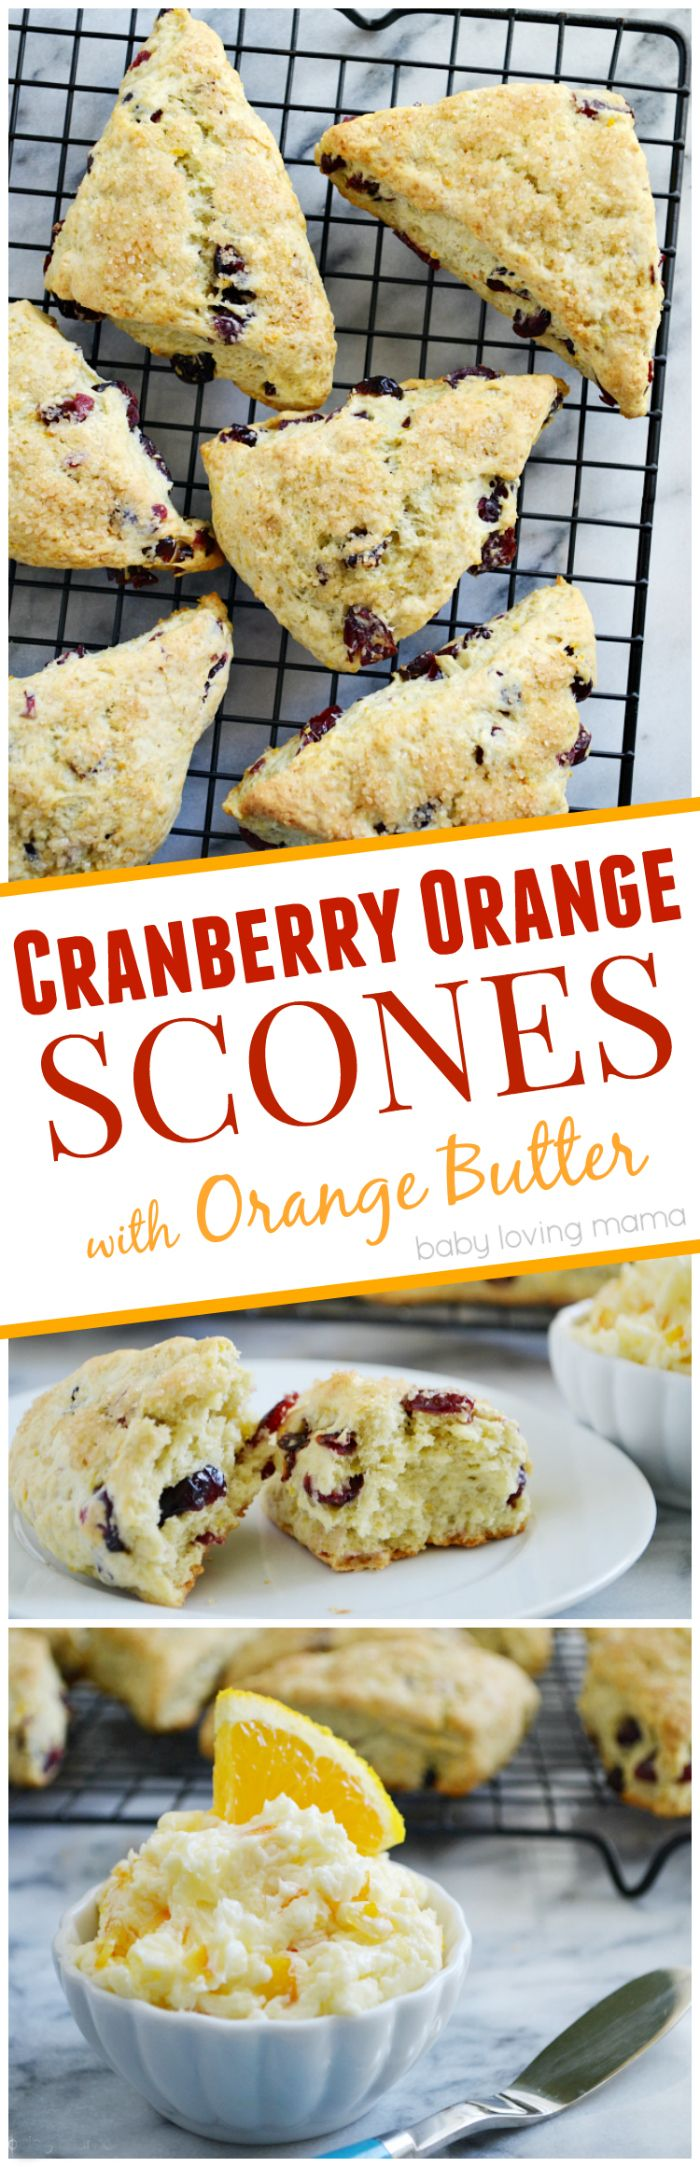 Cranberry Orange Scones with Orange Butter: See how easy it is to make ...